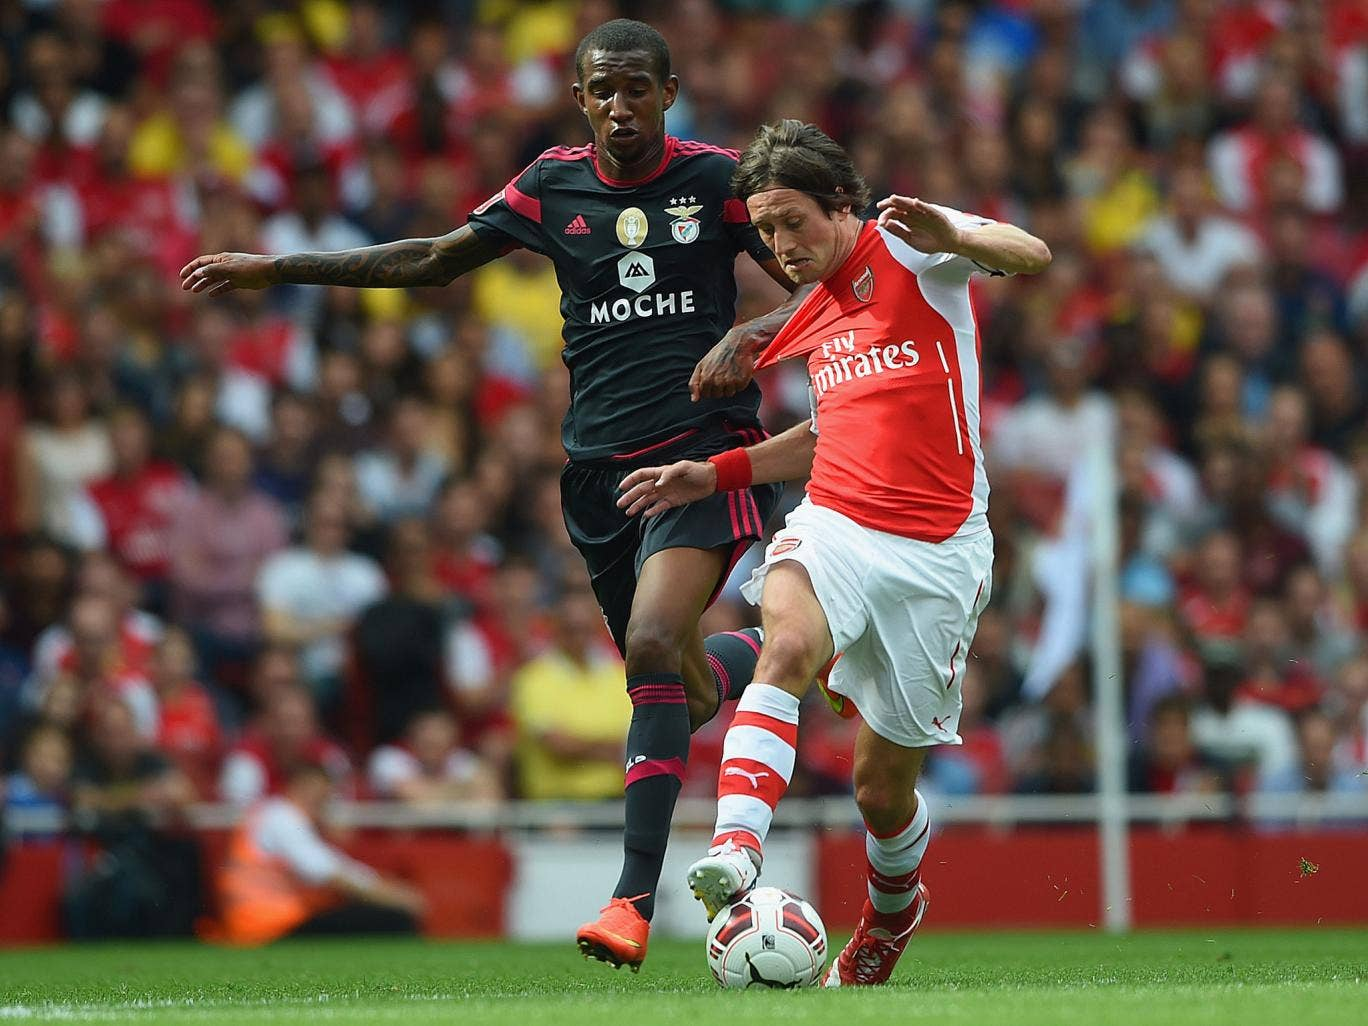 Tomas Rosicky is now the third longest-serving player in the current Arsenal squad